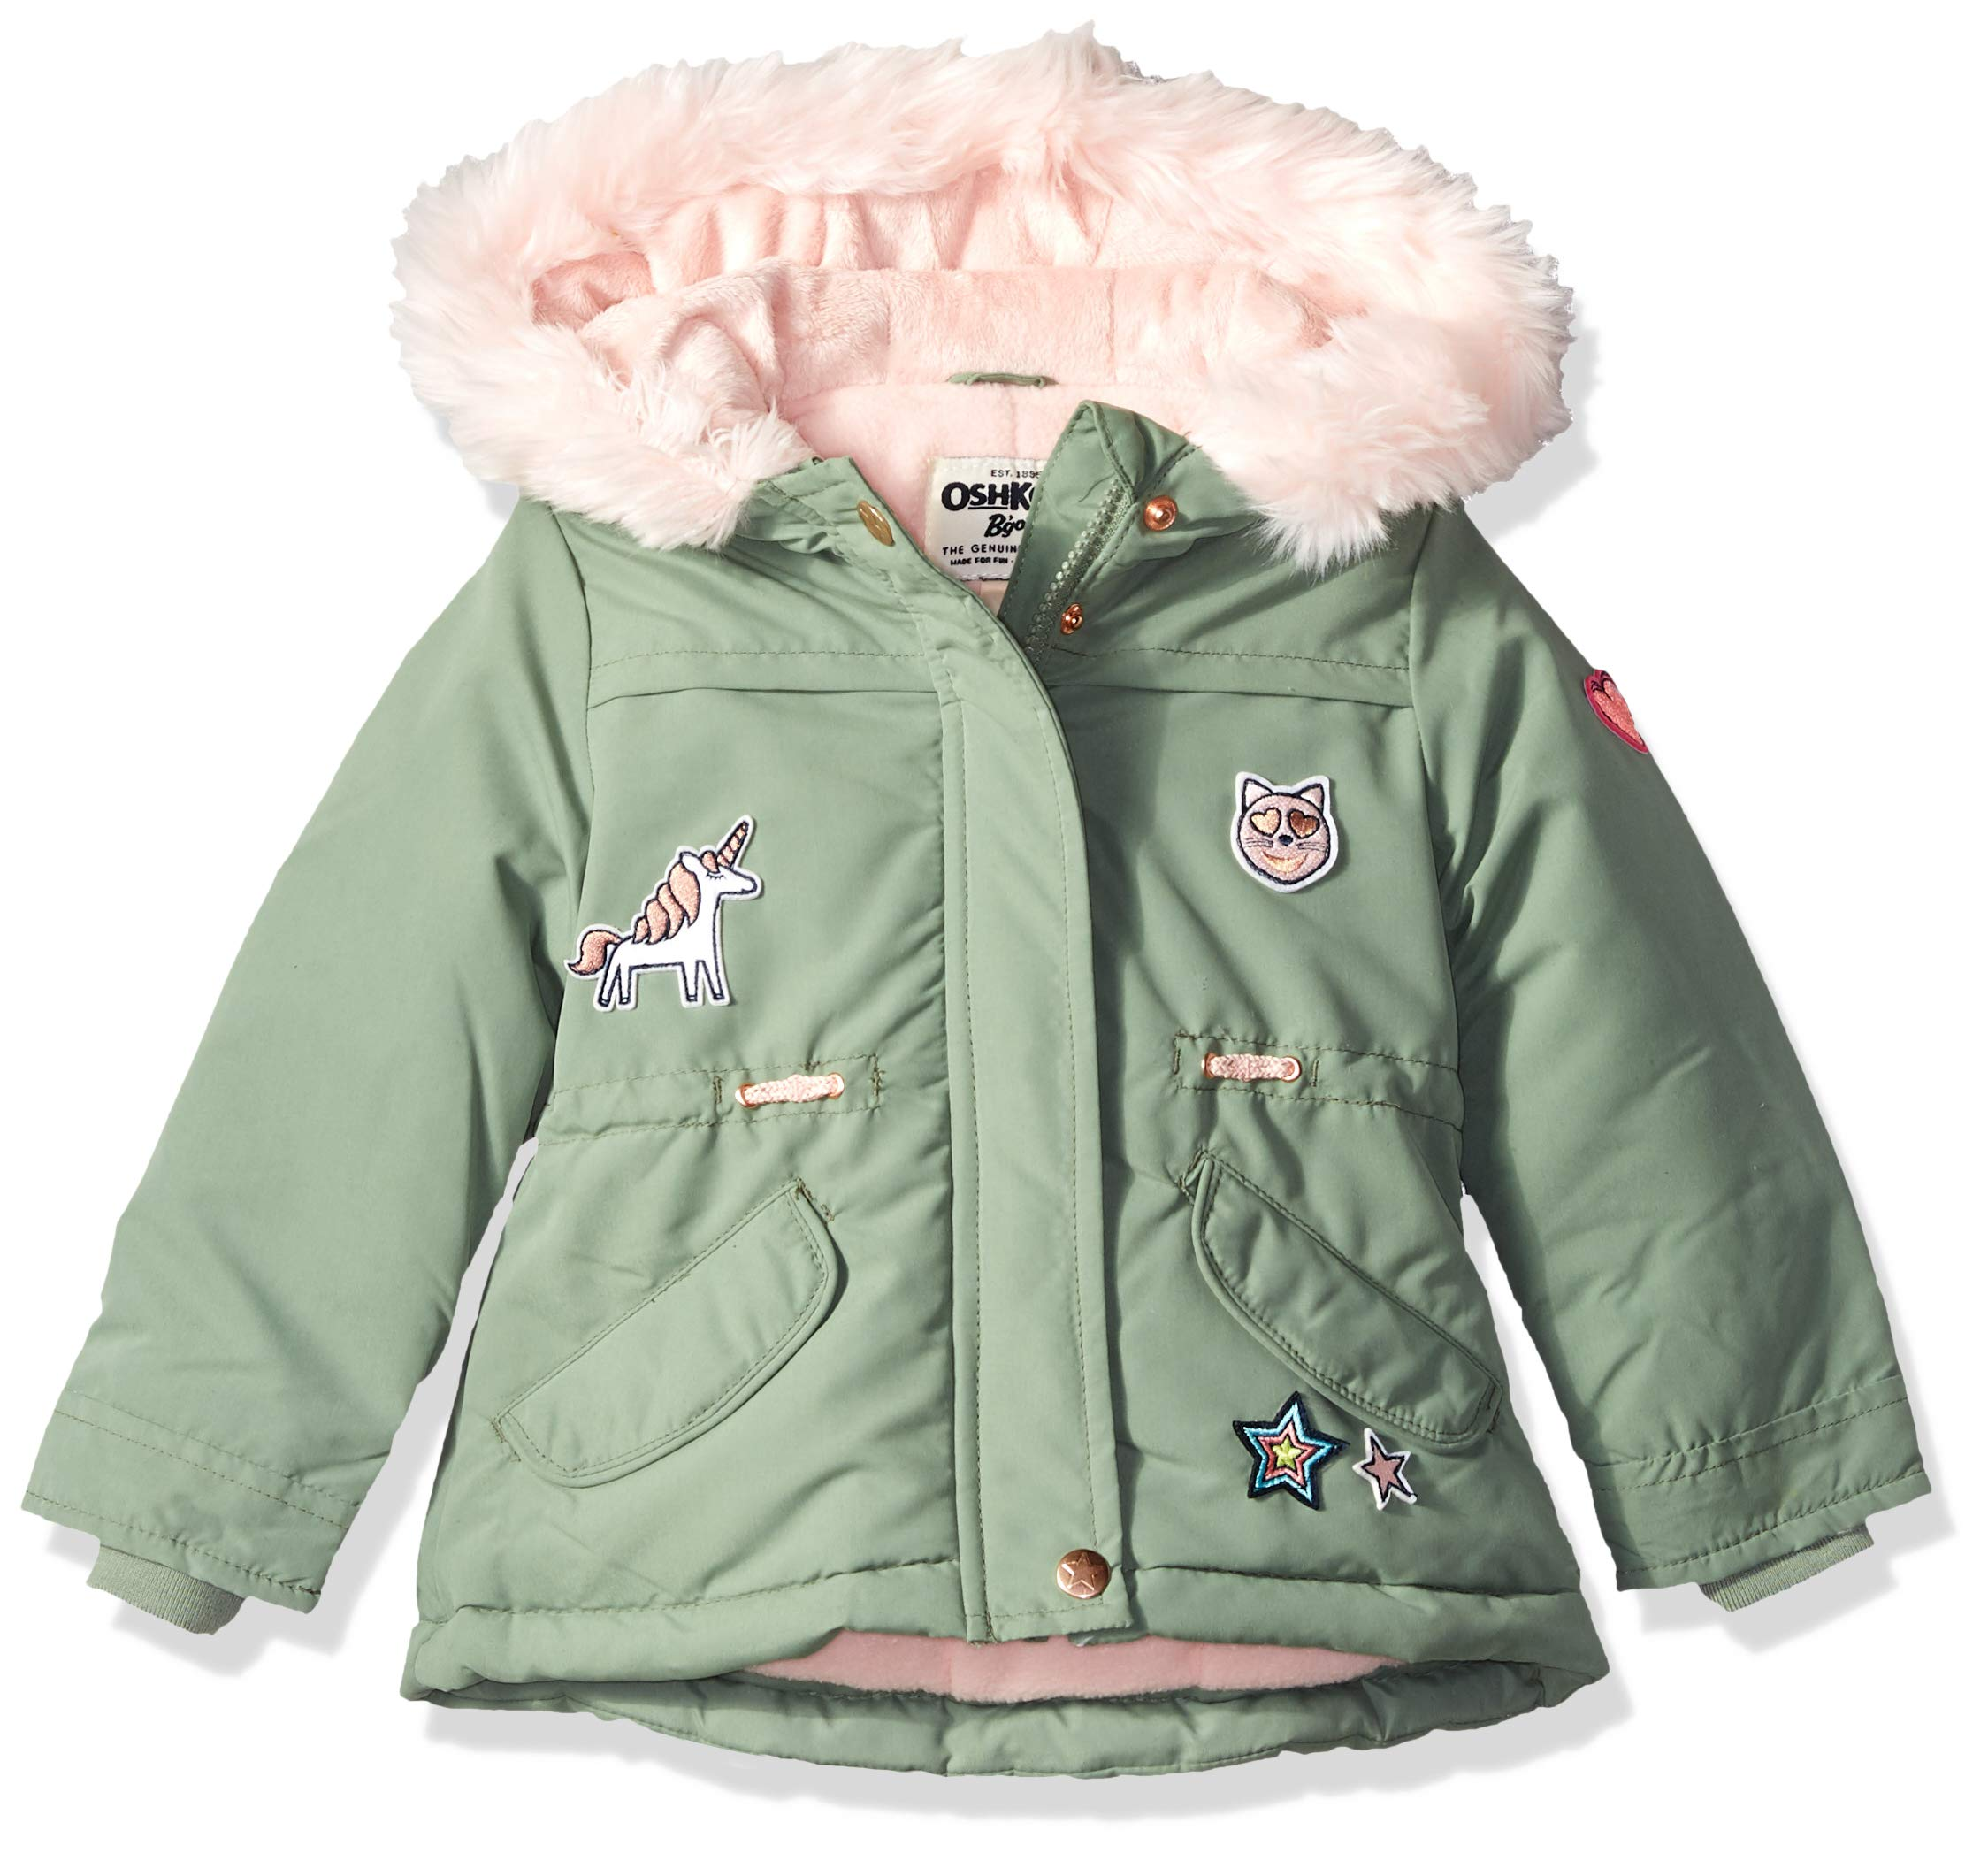 Osh Kosh Toddler Girls' Pretty Cool Parka Jacket, Acadia Green/Grace Pink Patches, 4T